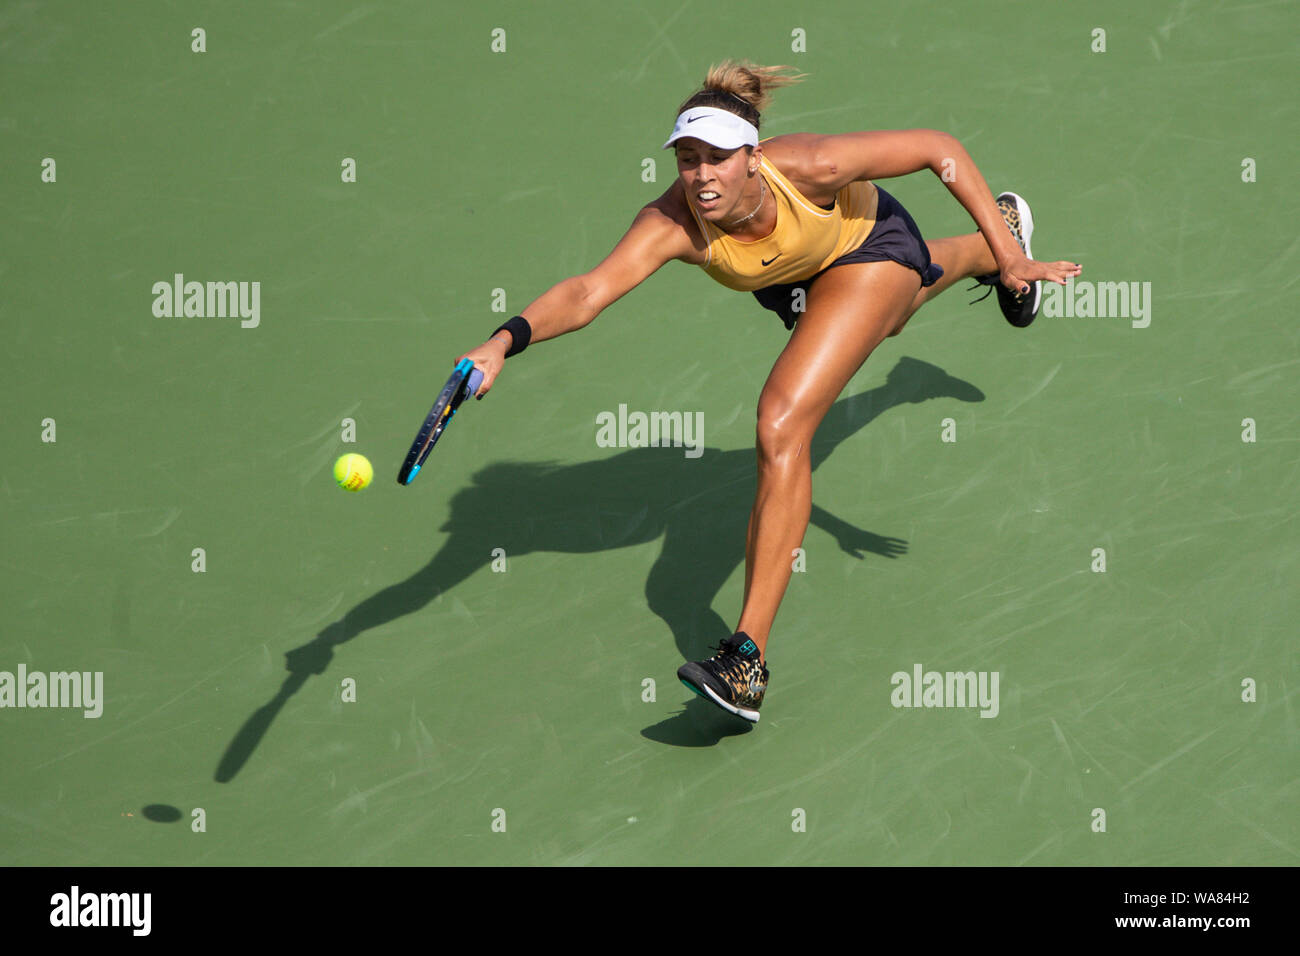 August 18, 2019, Mason, Ohio, USA: Madison Keys (USA) reaches for a shot to the corner during the Women's Final of the Western and Southern Open at the Lindner Family Tennis Center, Mason, Oh. (Credit Image: © Scott Stuart/ZUMA Wire) Stock Photo